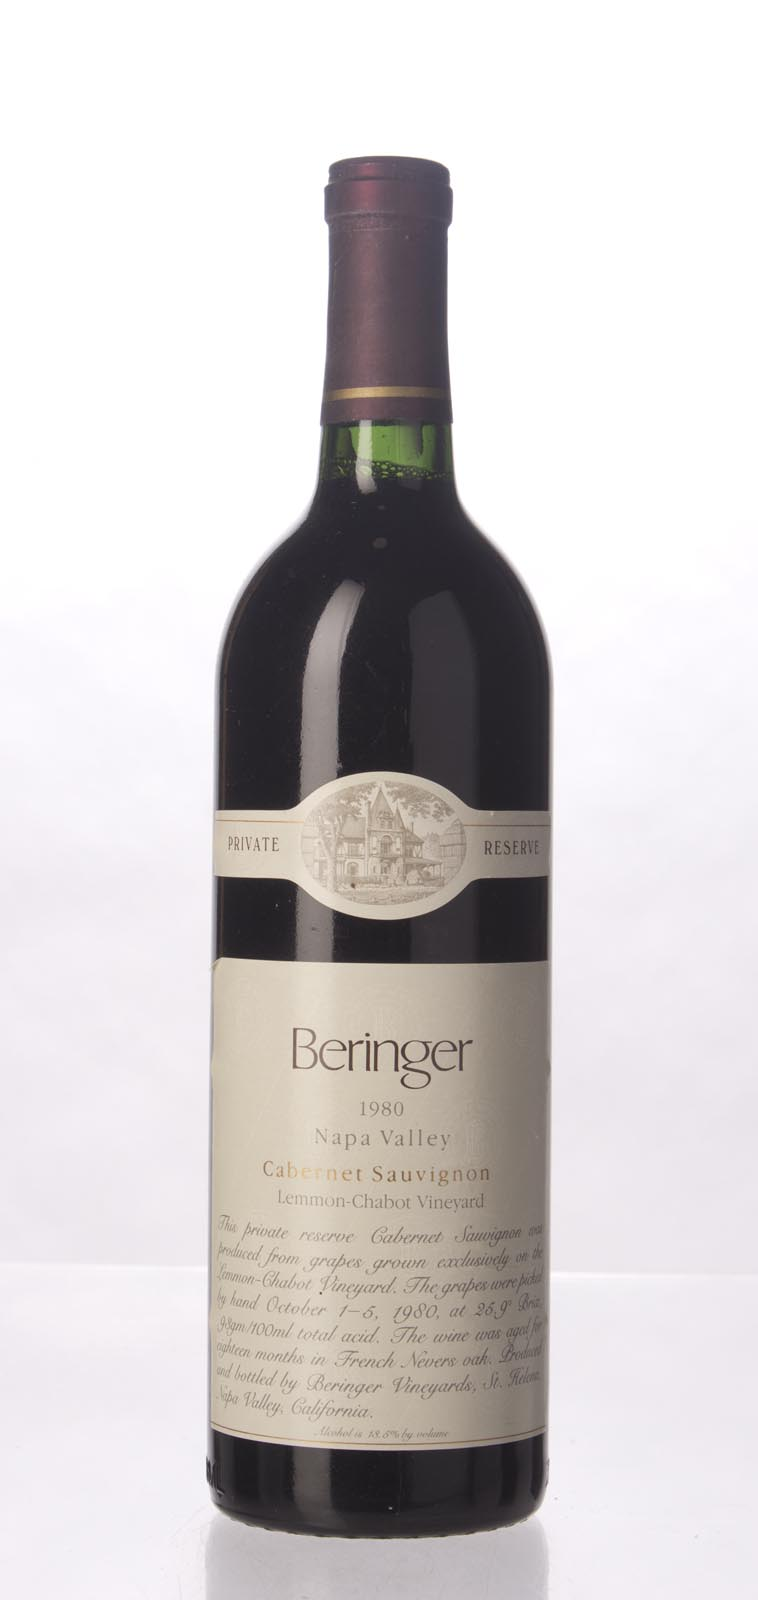 Beringer Cabernet Sauvignon Lemmon Chabot Vineyard Private Reserve 1980,  (WS93) from The BPW - Merchants of rare and fine wines.